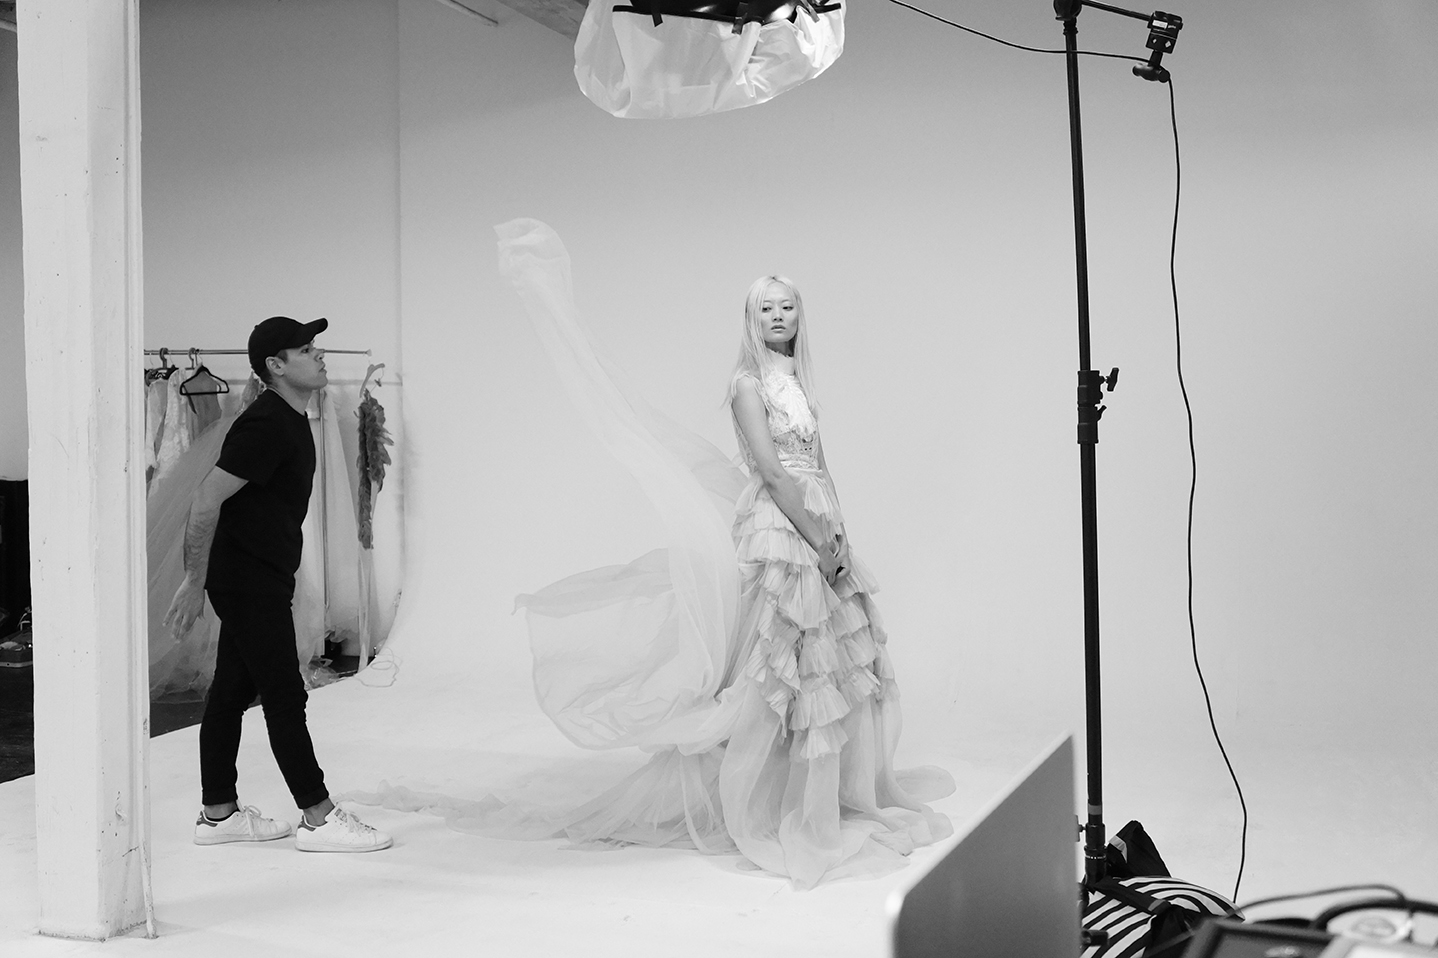 New-York-Fashion-Photographer-Grayson-Hoffman-On-Set-Behind-The-Scenes-Studio-On-Location-Black-And-White-27